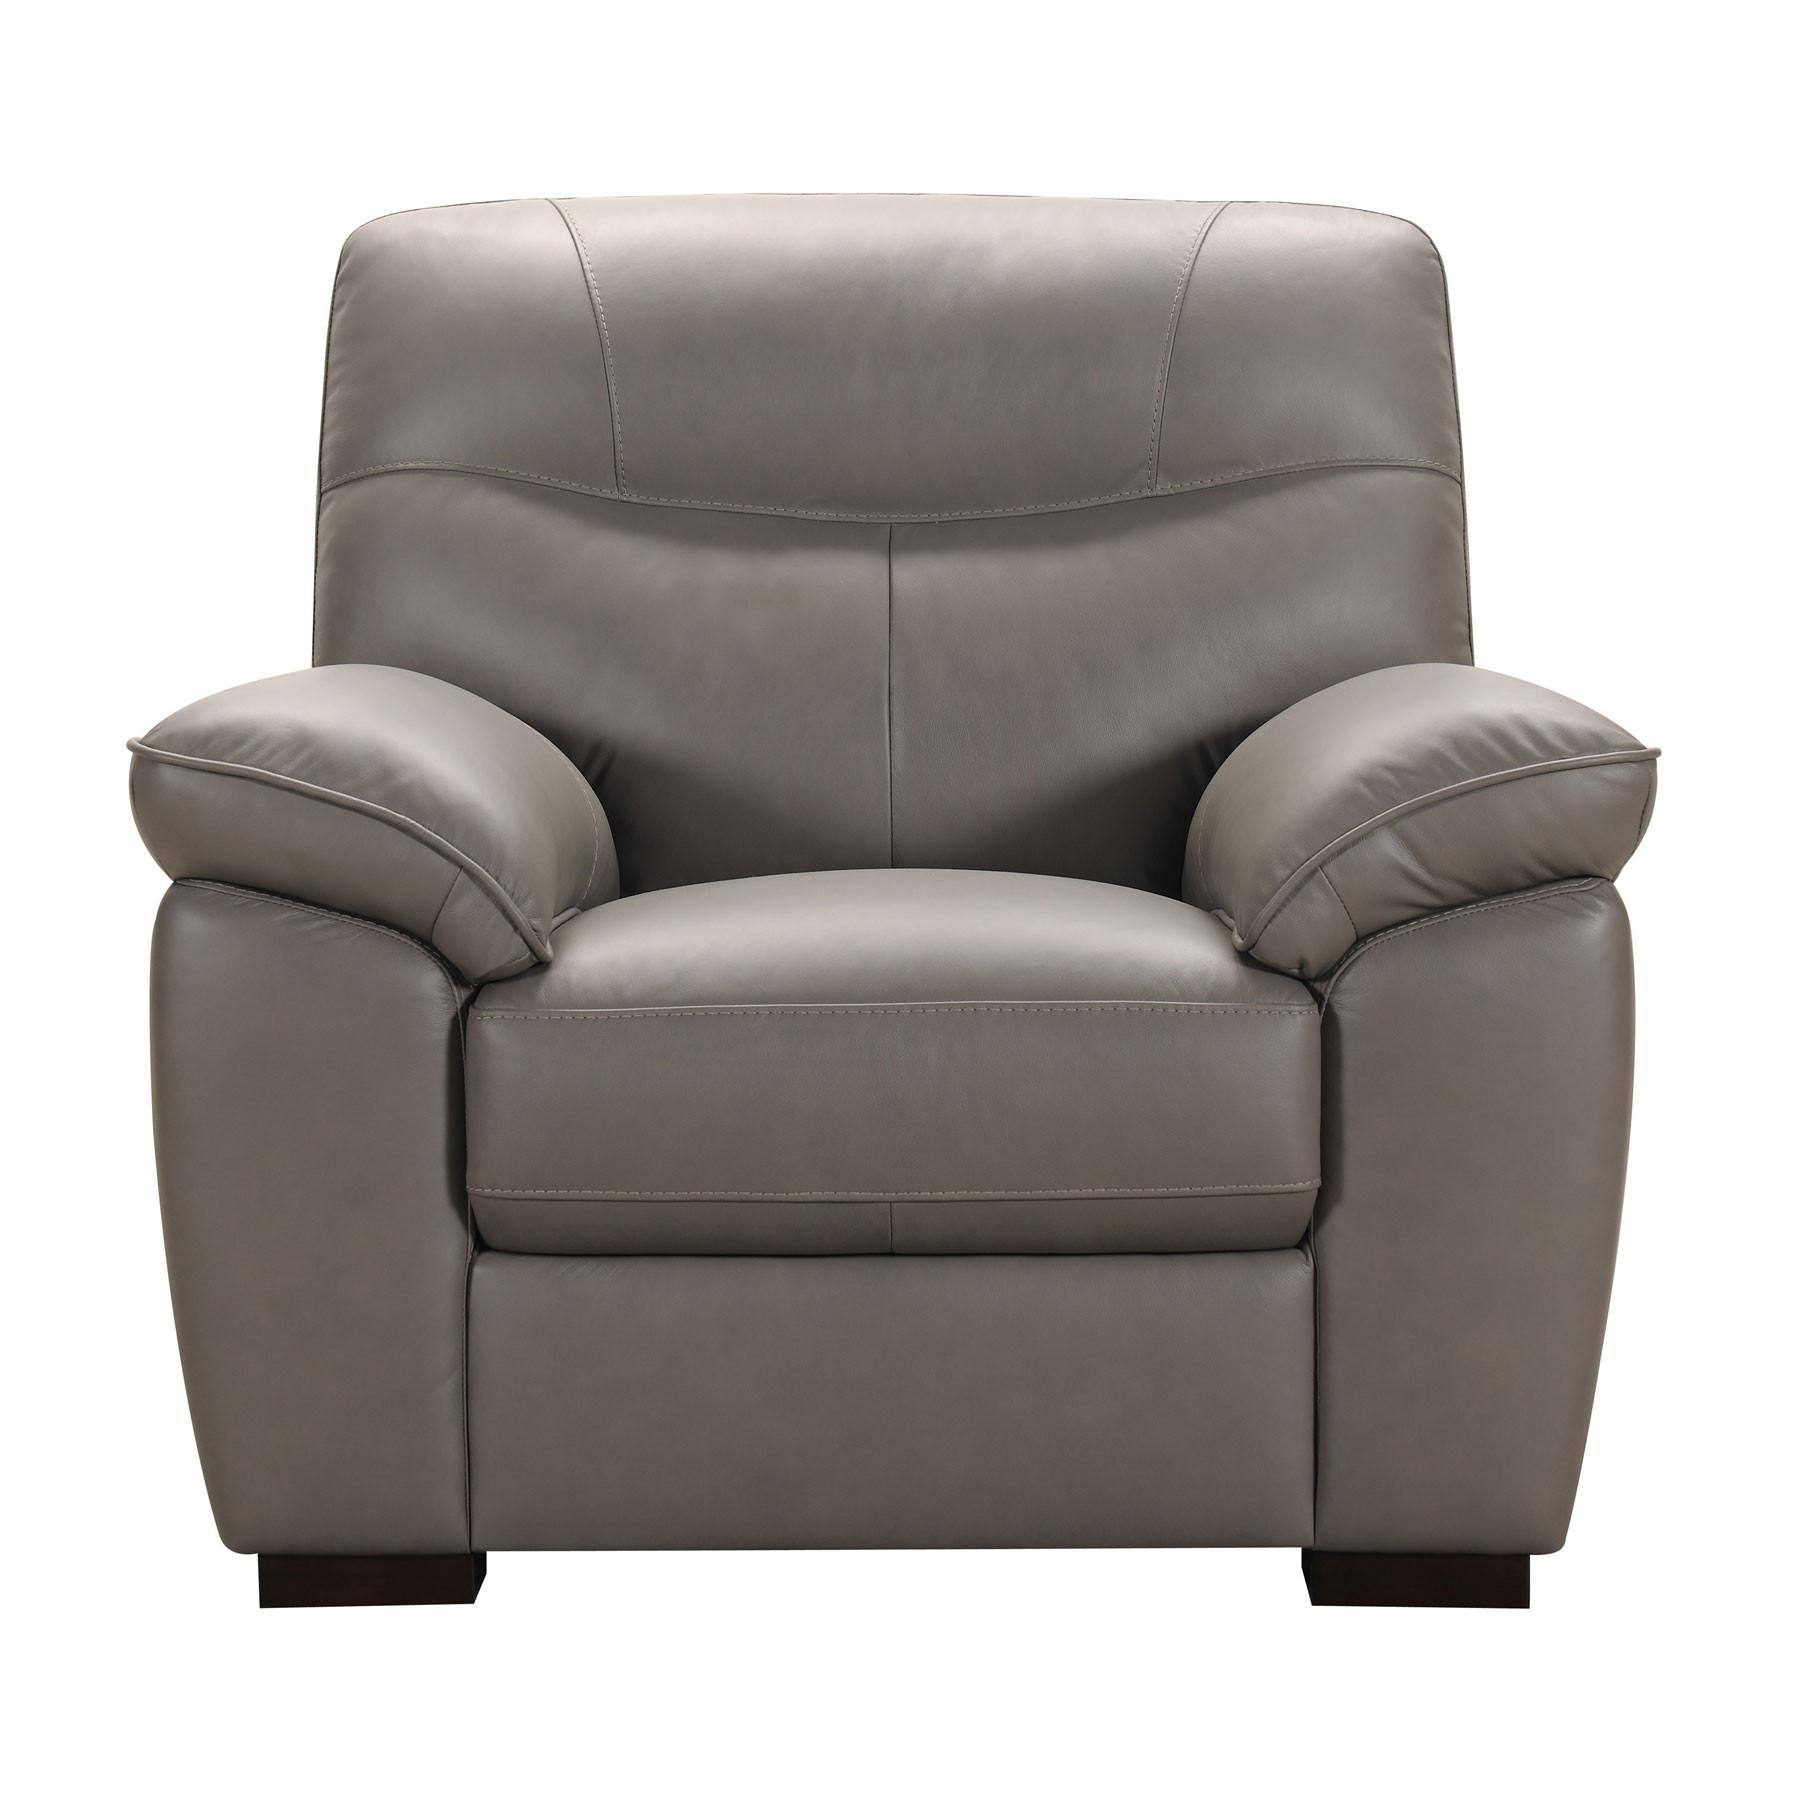 Andrea Grey Leather Armchair click. A